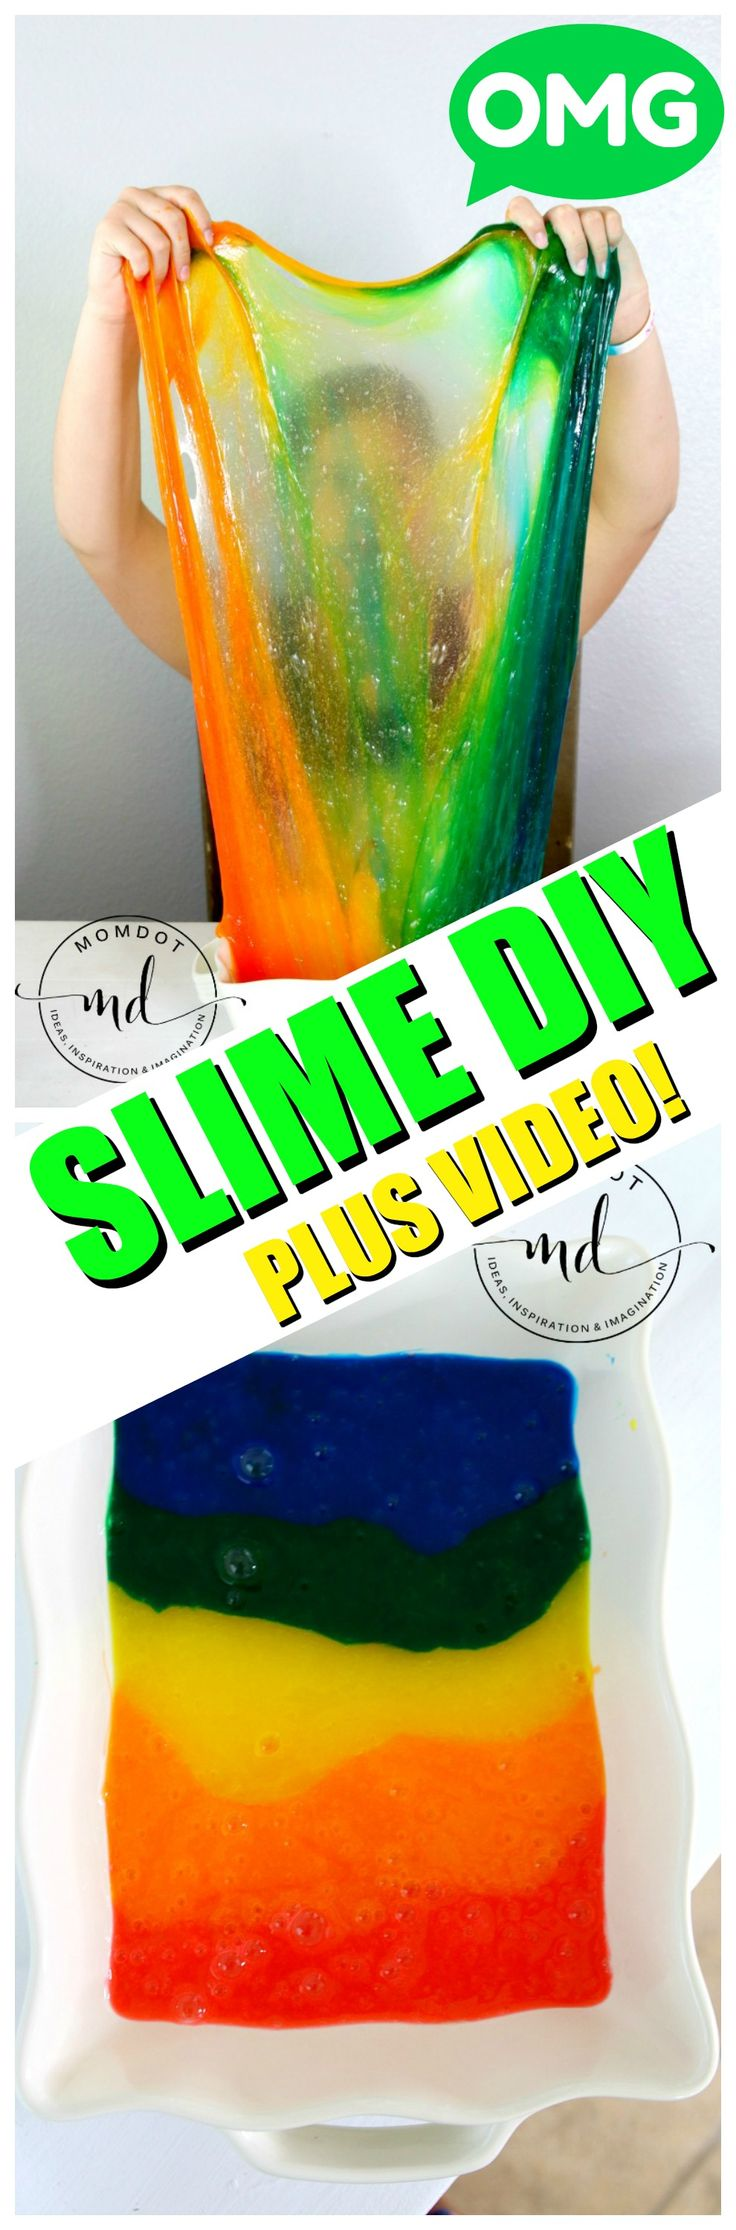 Best Slime Recipes For Making Slime With Kids For Science: 1043 Best Slime Recipes Images On Pinterest